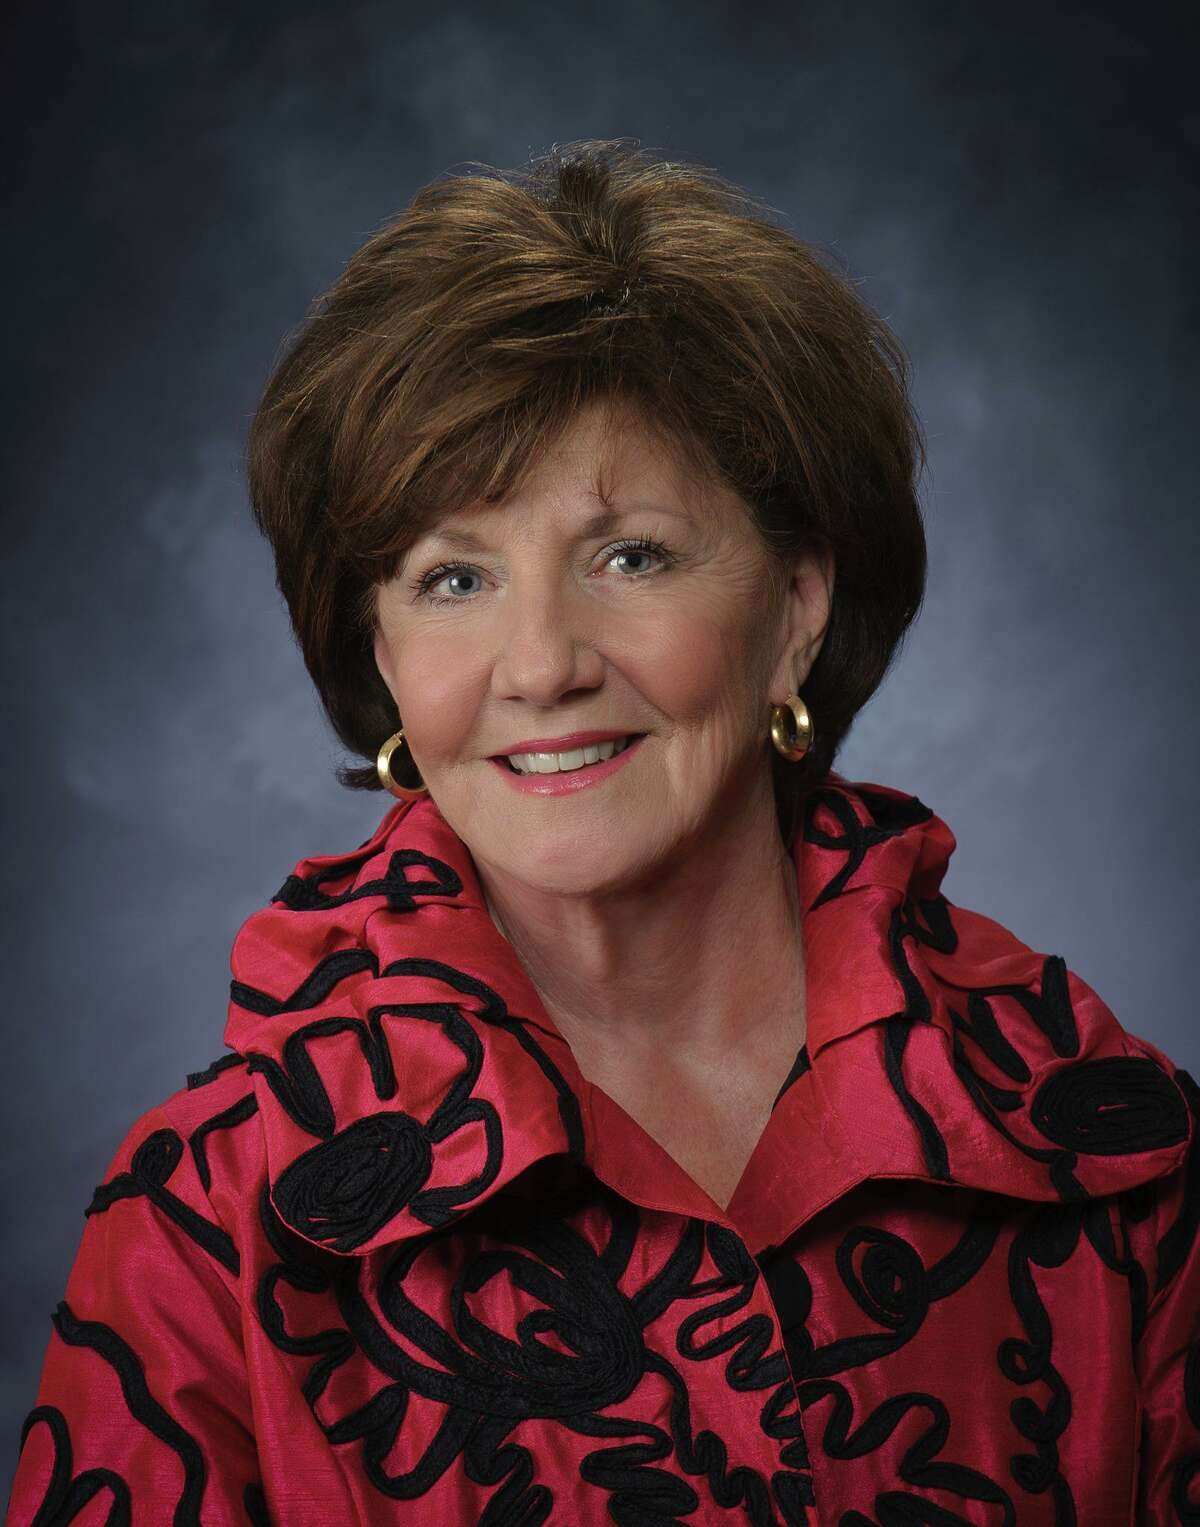 Dorothy Gibbons, The Rose Co-Founder and Chief Executive Officer